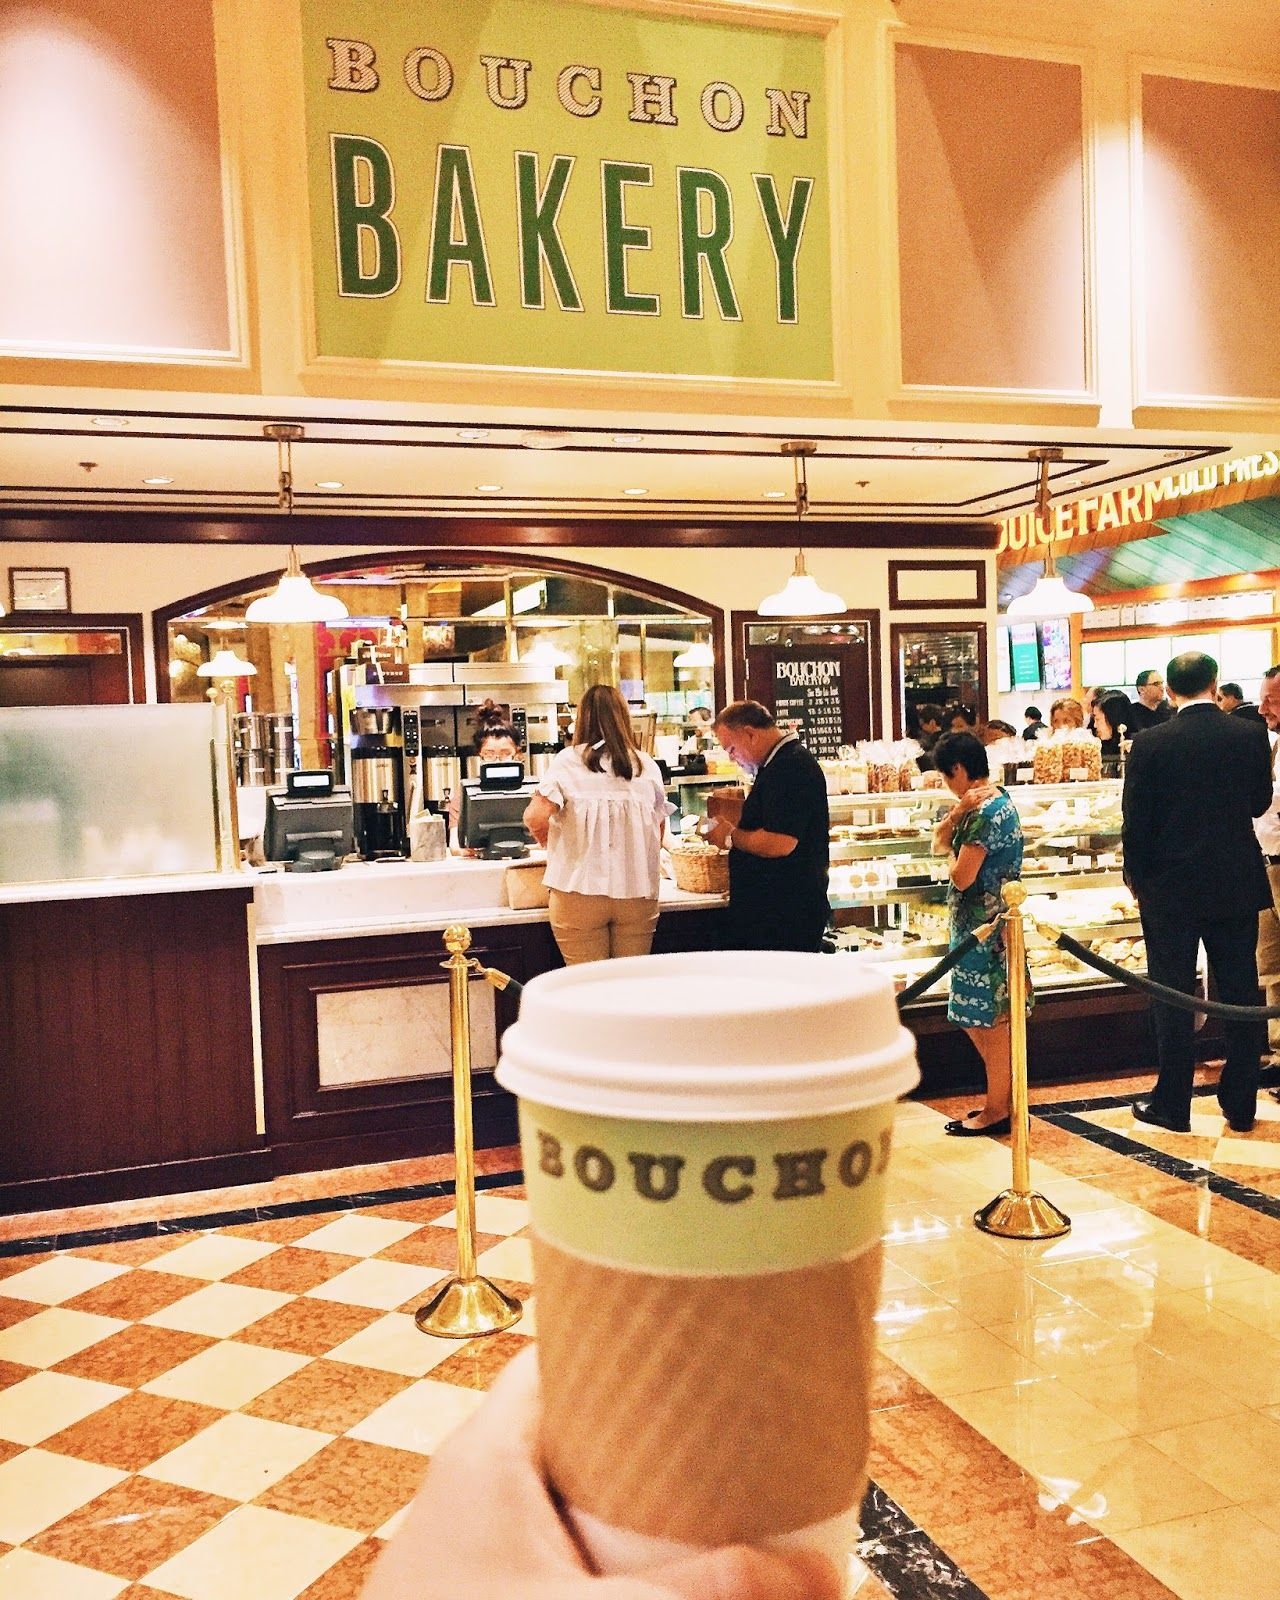 Bouchon bakery at the las vegas with images